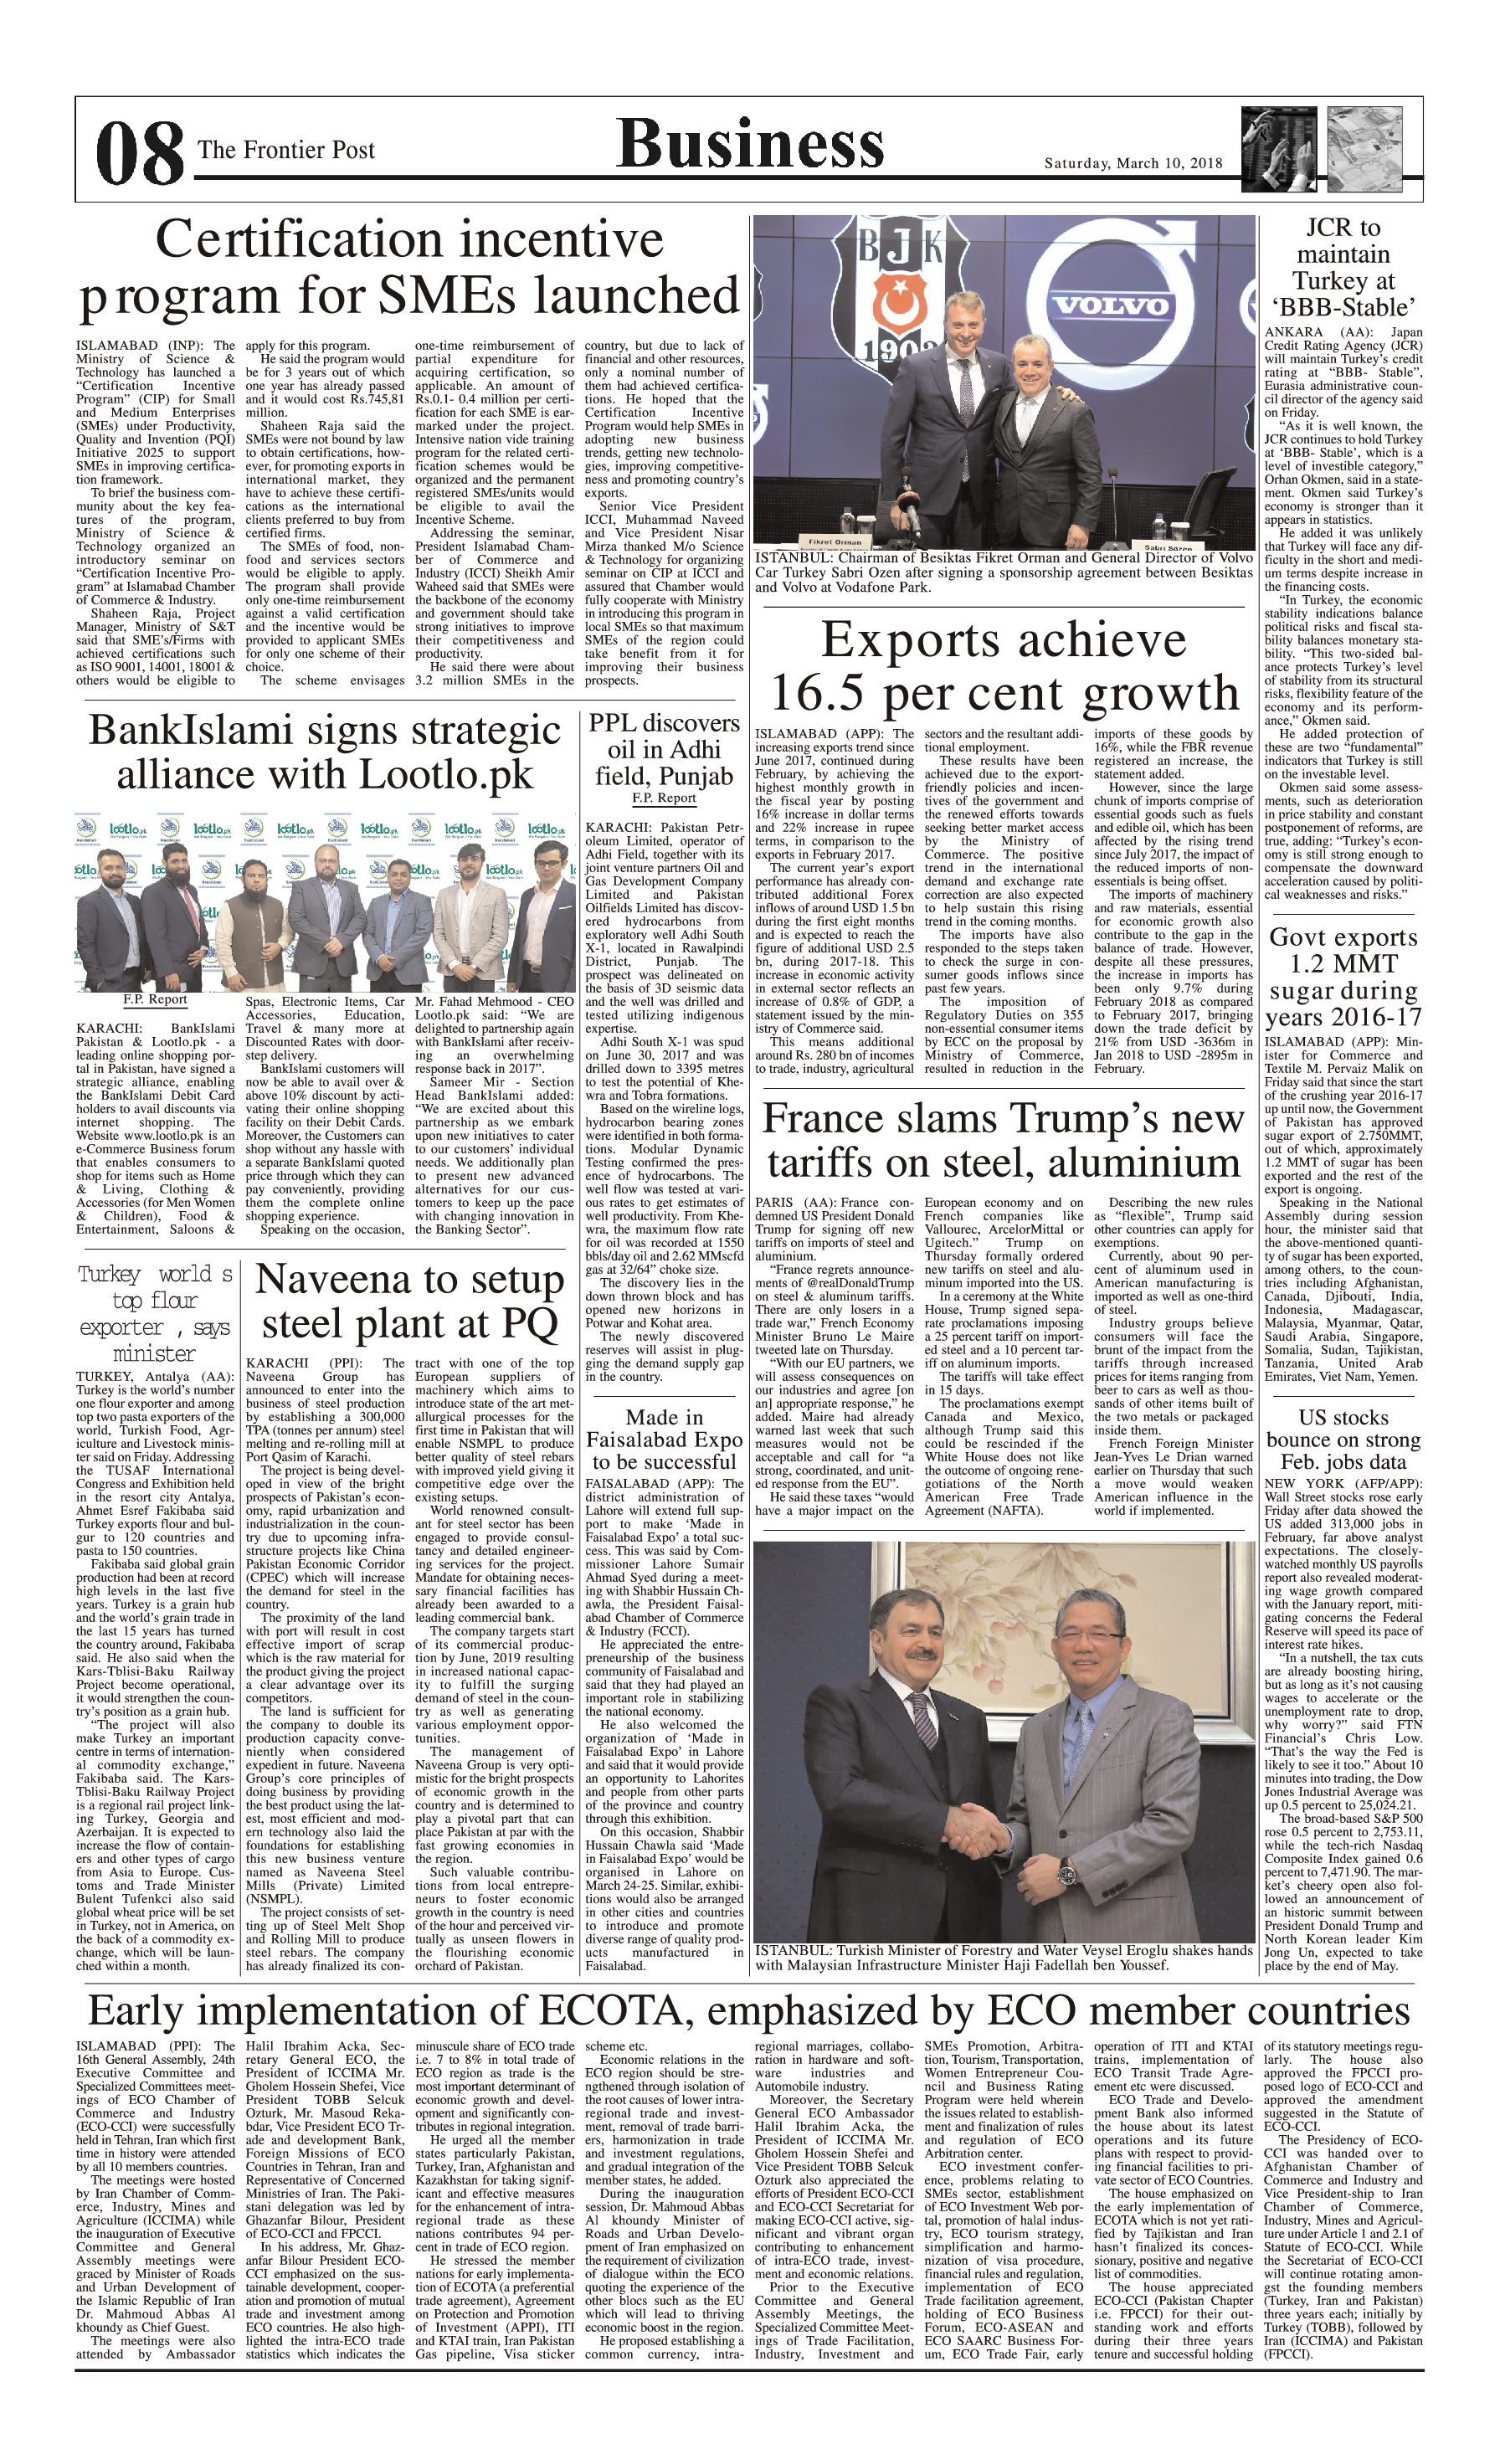 Business Page 10-3